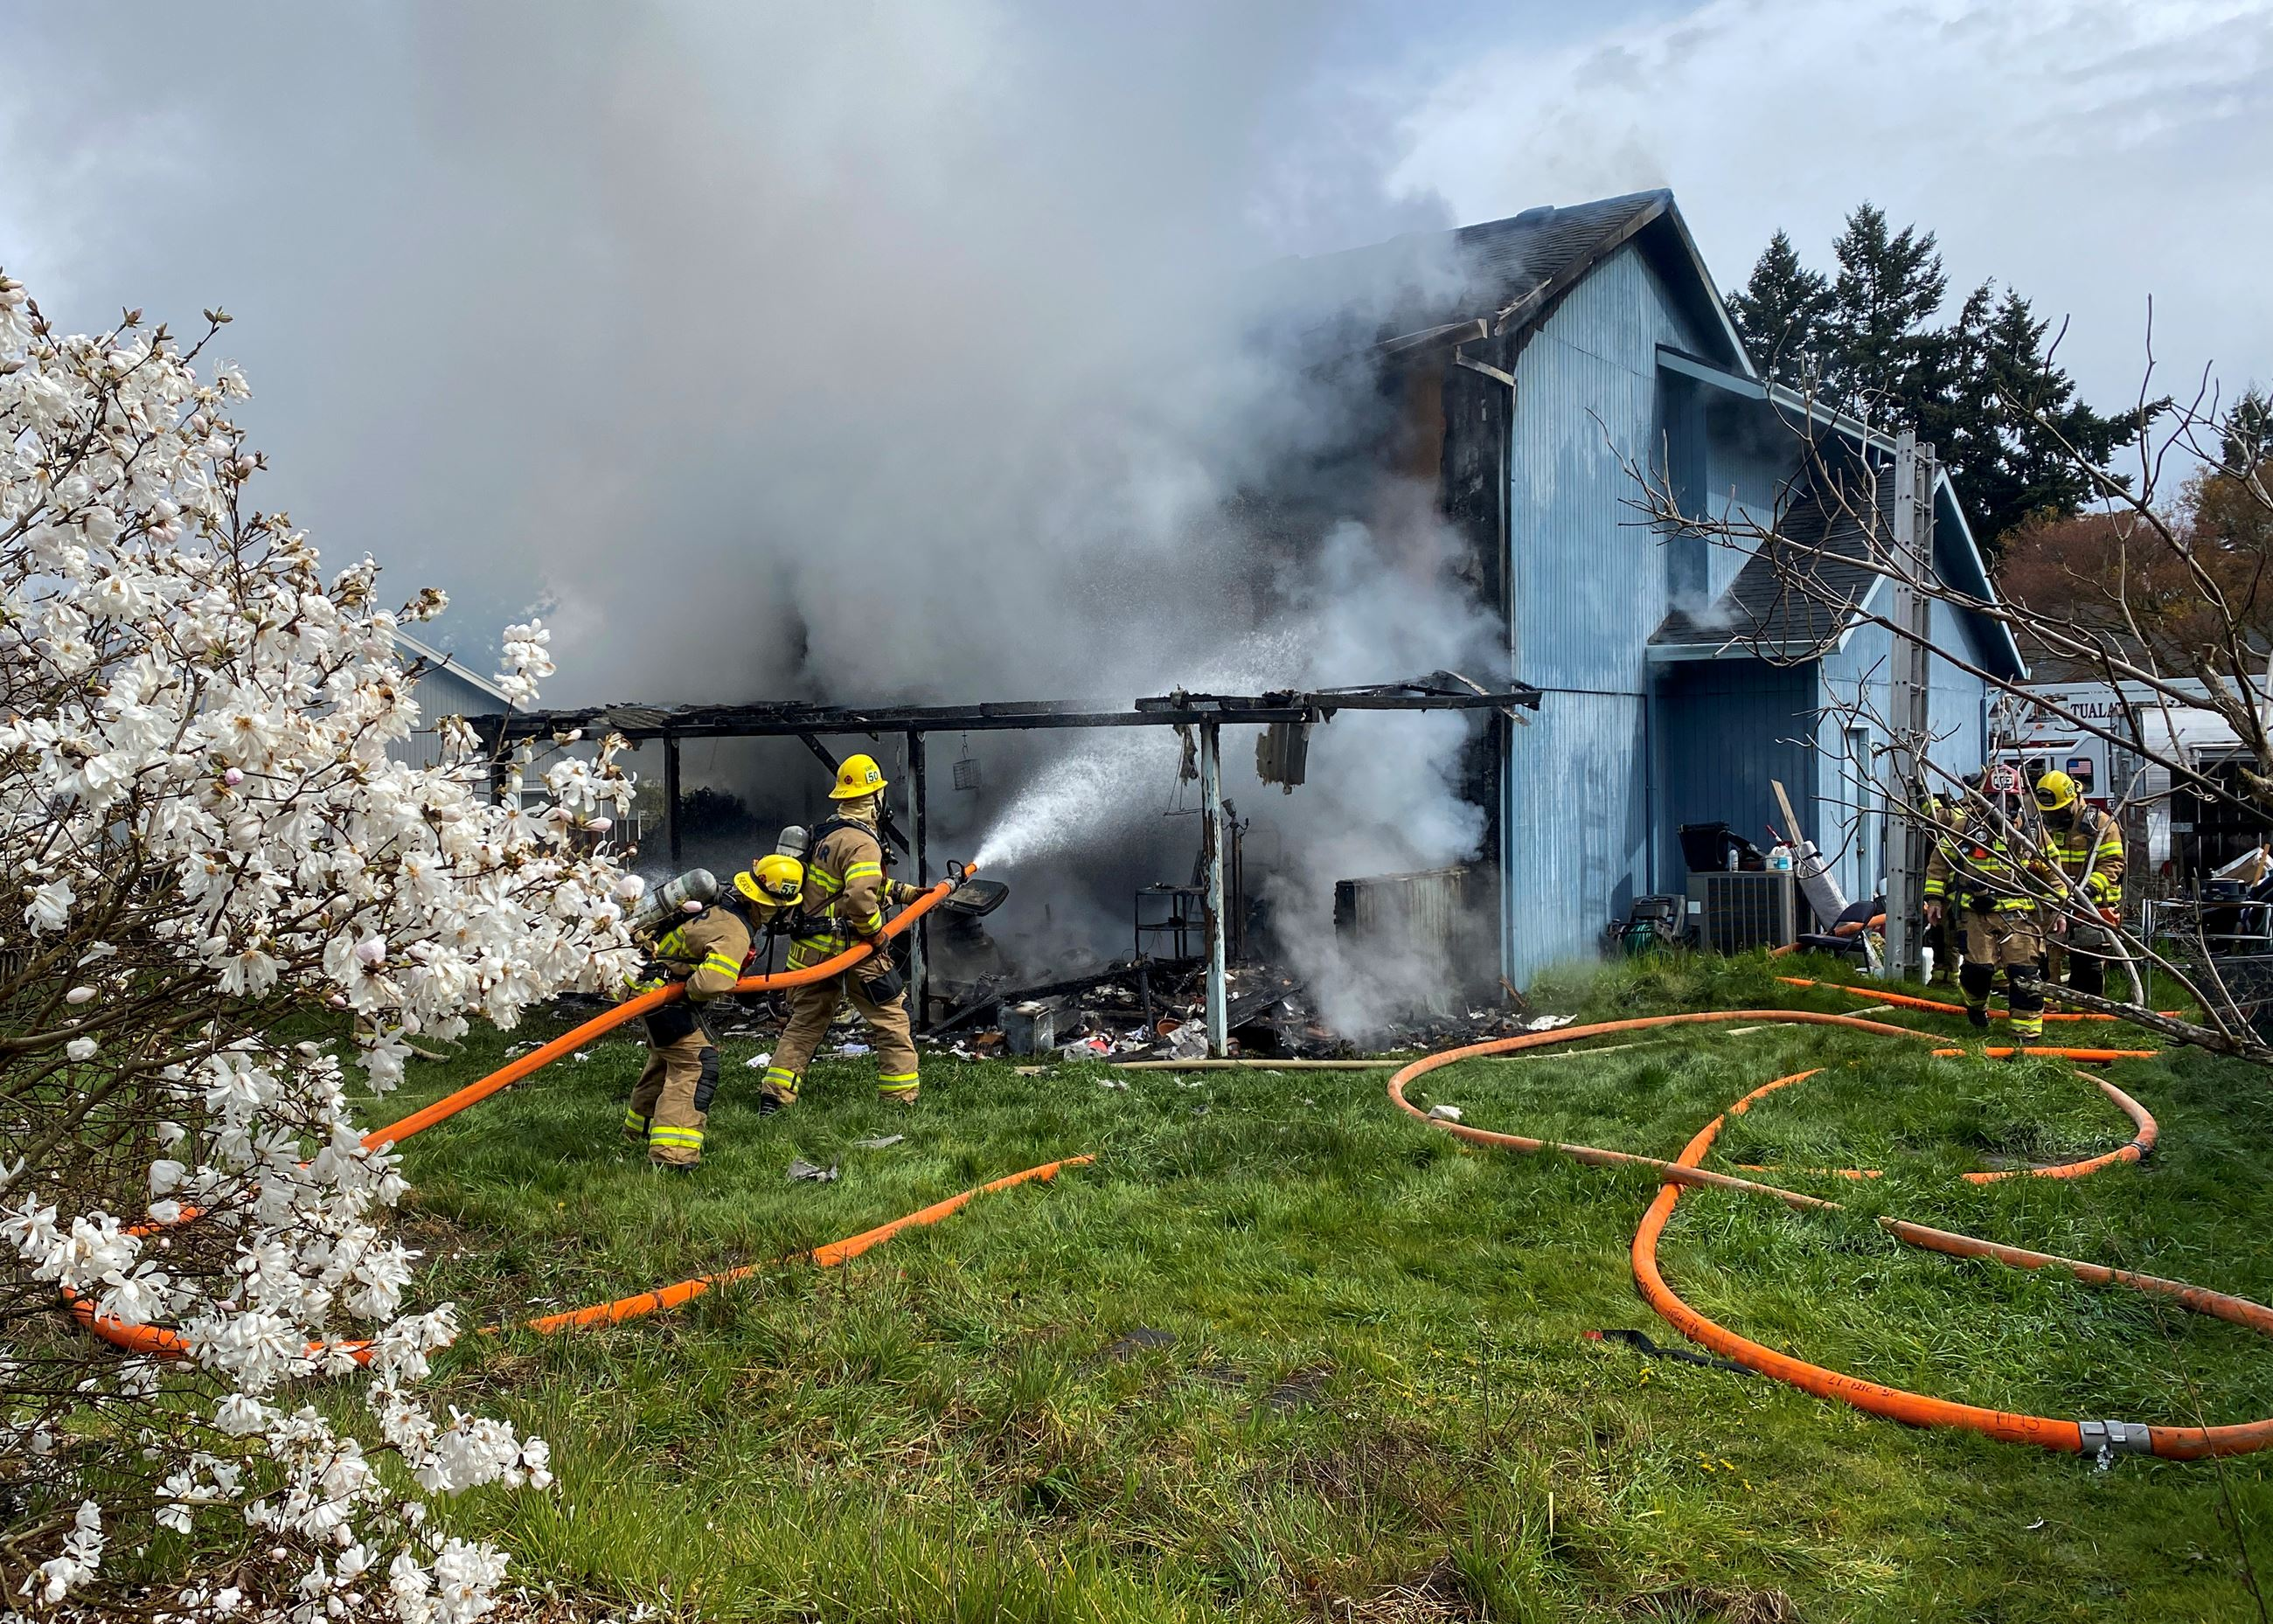 Firefighters work to extinguish Tigard house fire